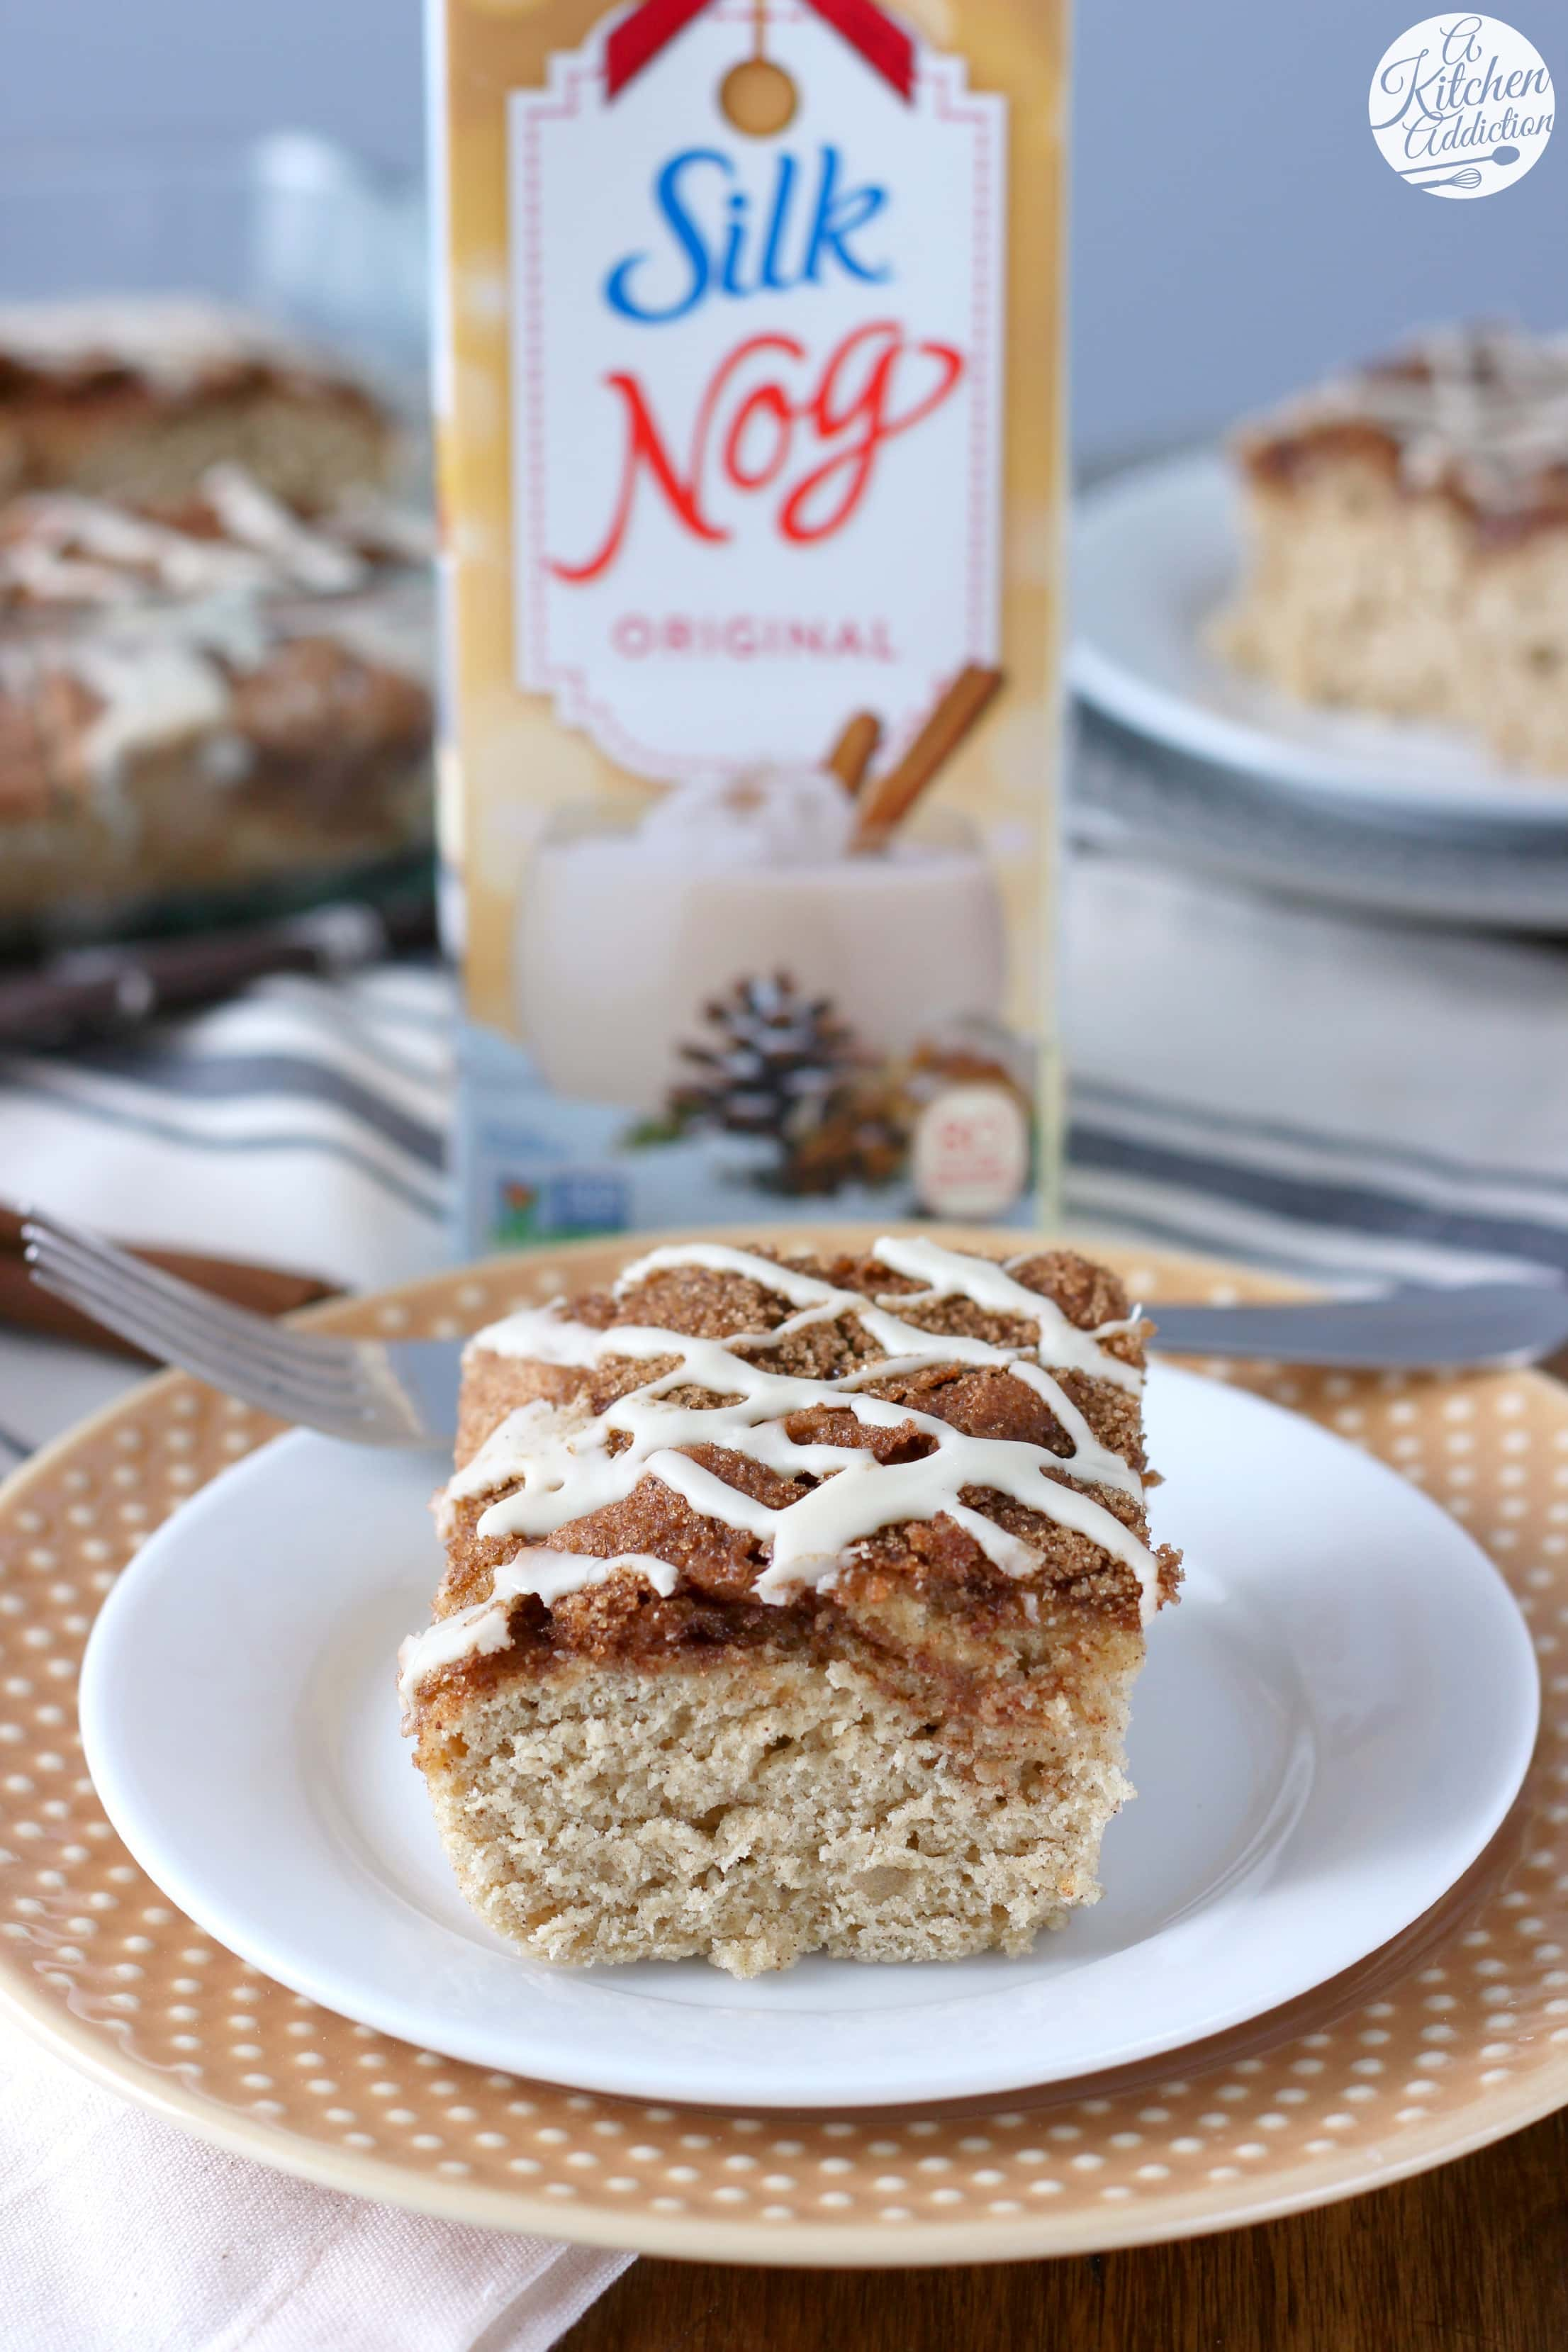 Dairy Free Glazed Eggnog Cinnamon Swirl Cake from A Kitchen Addiction